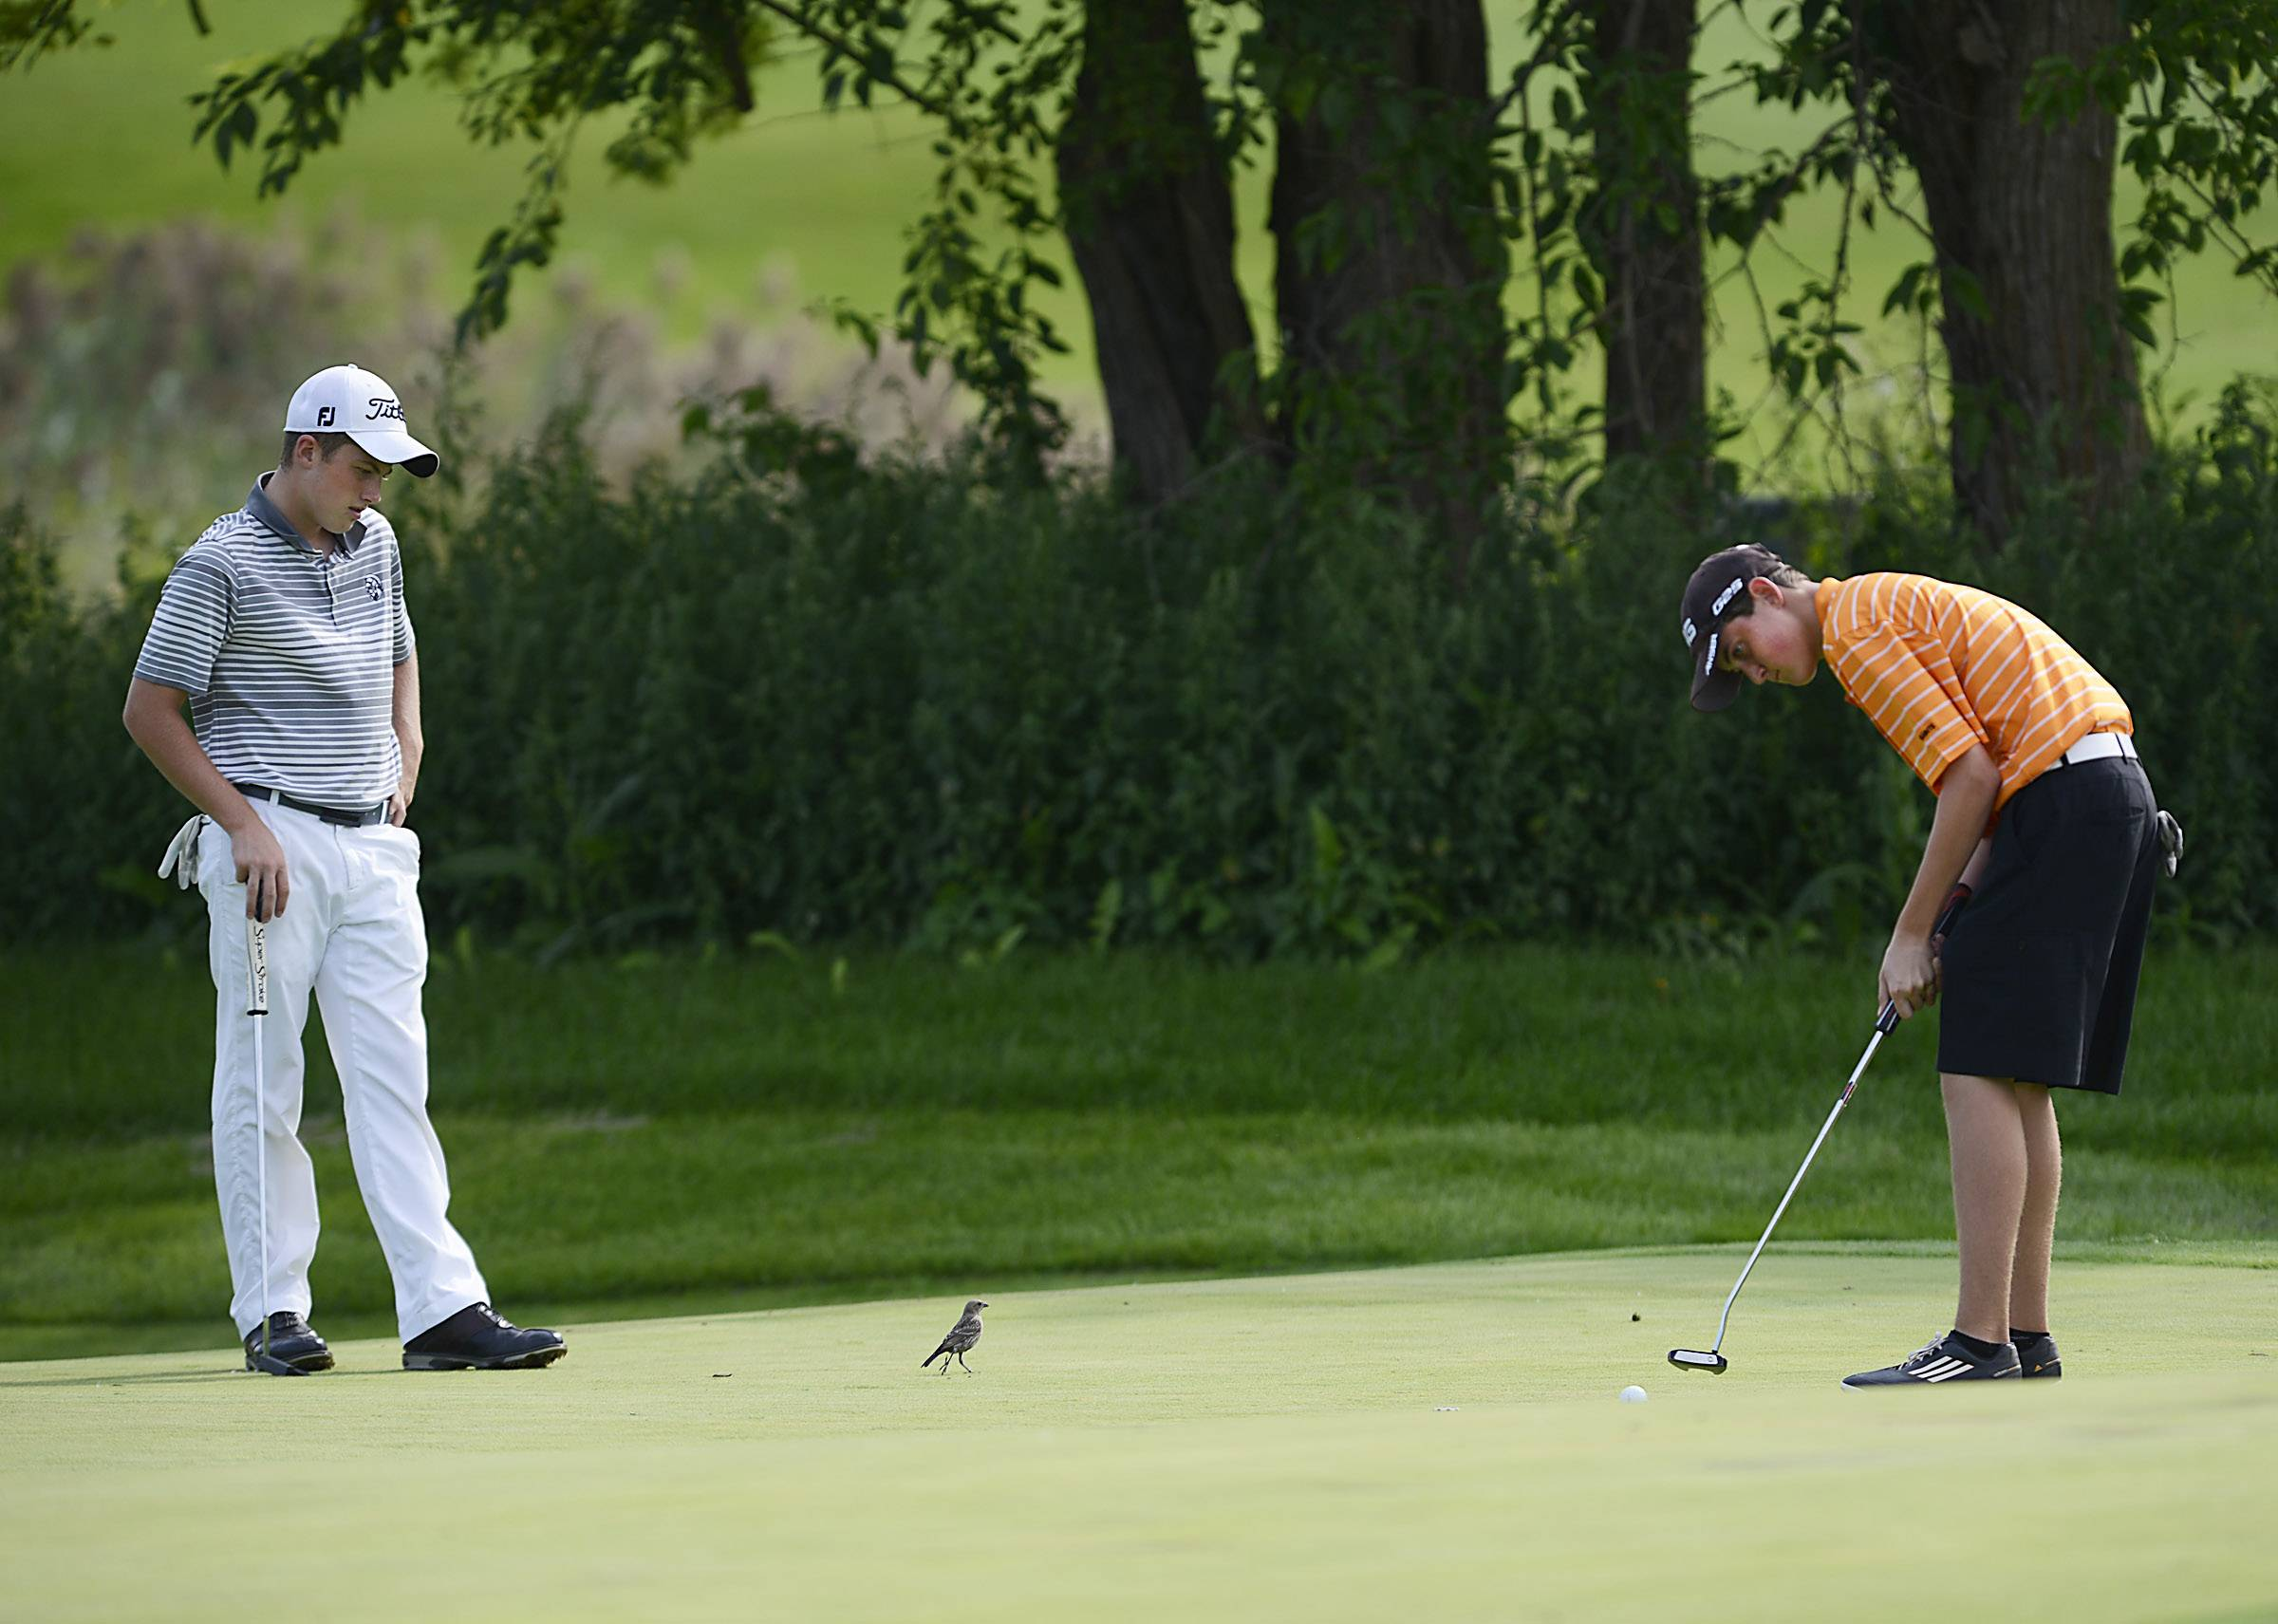 Kaneland's Jake Head watches a sparrow scamper across the green while St. Charles East's Daniel Haugen putts Thursday at the Geneva boys golf invitational at Mill Creek Golf Club.